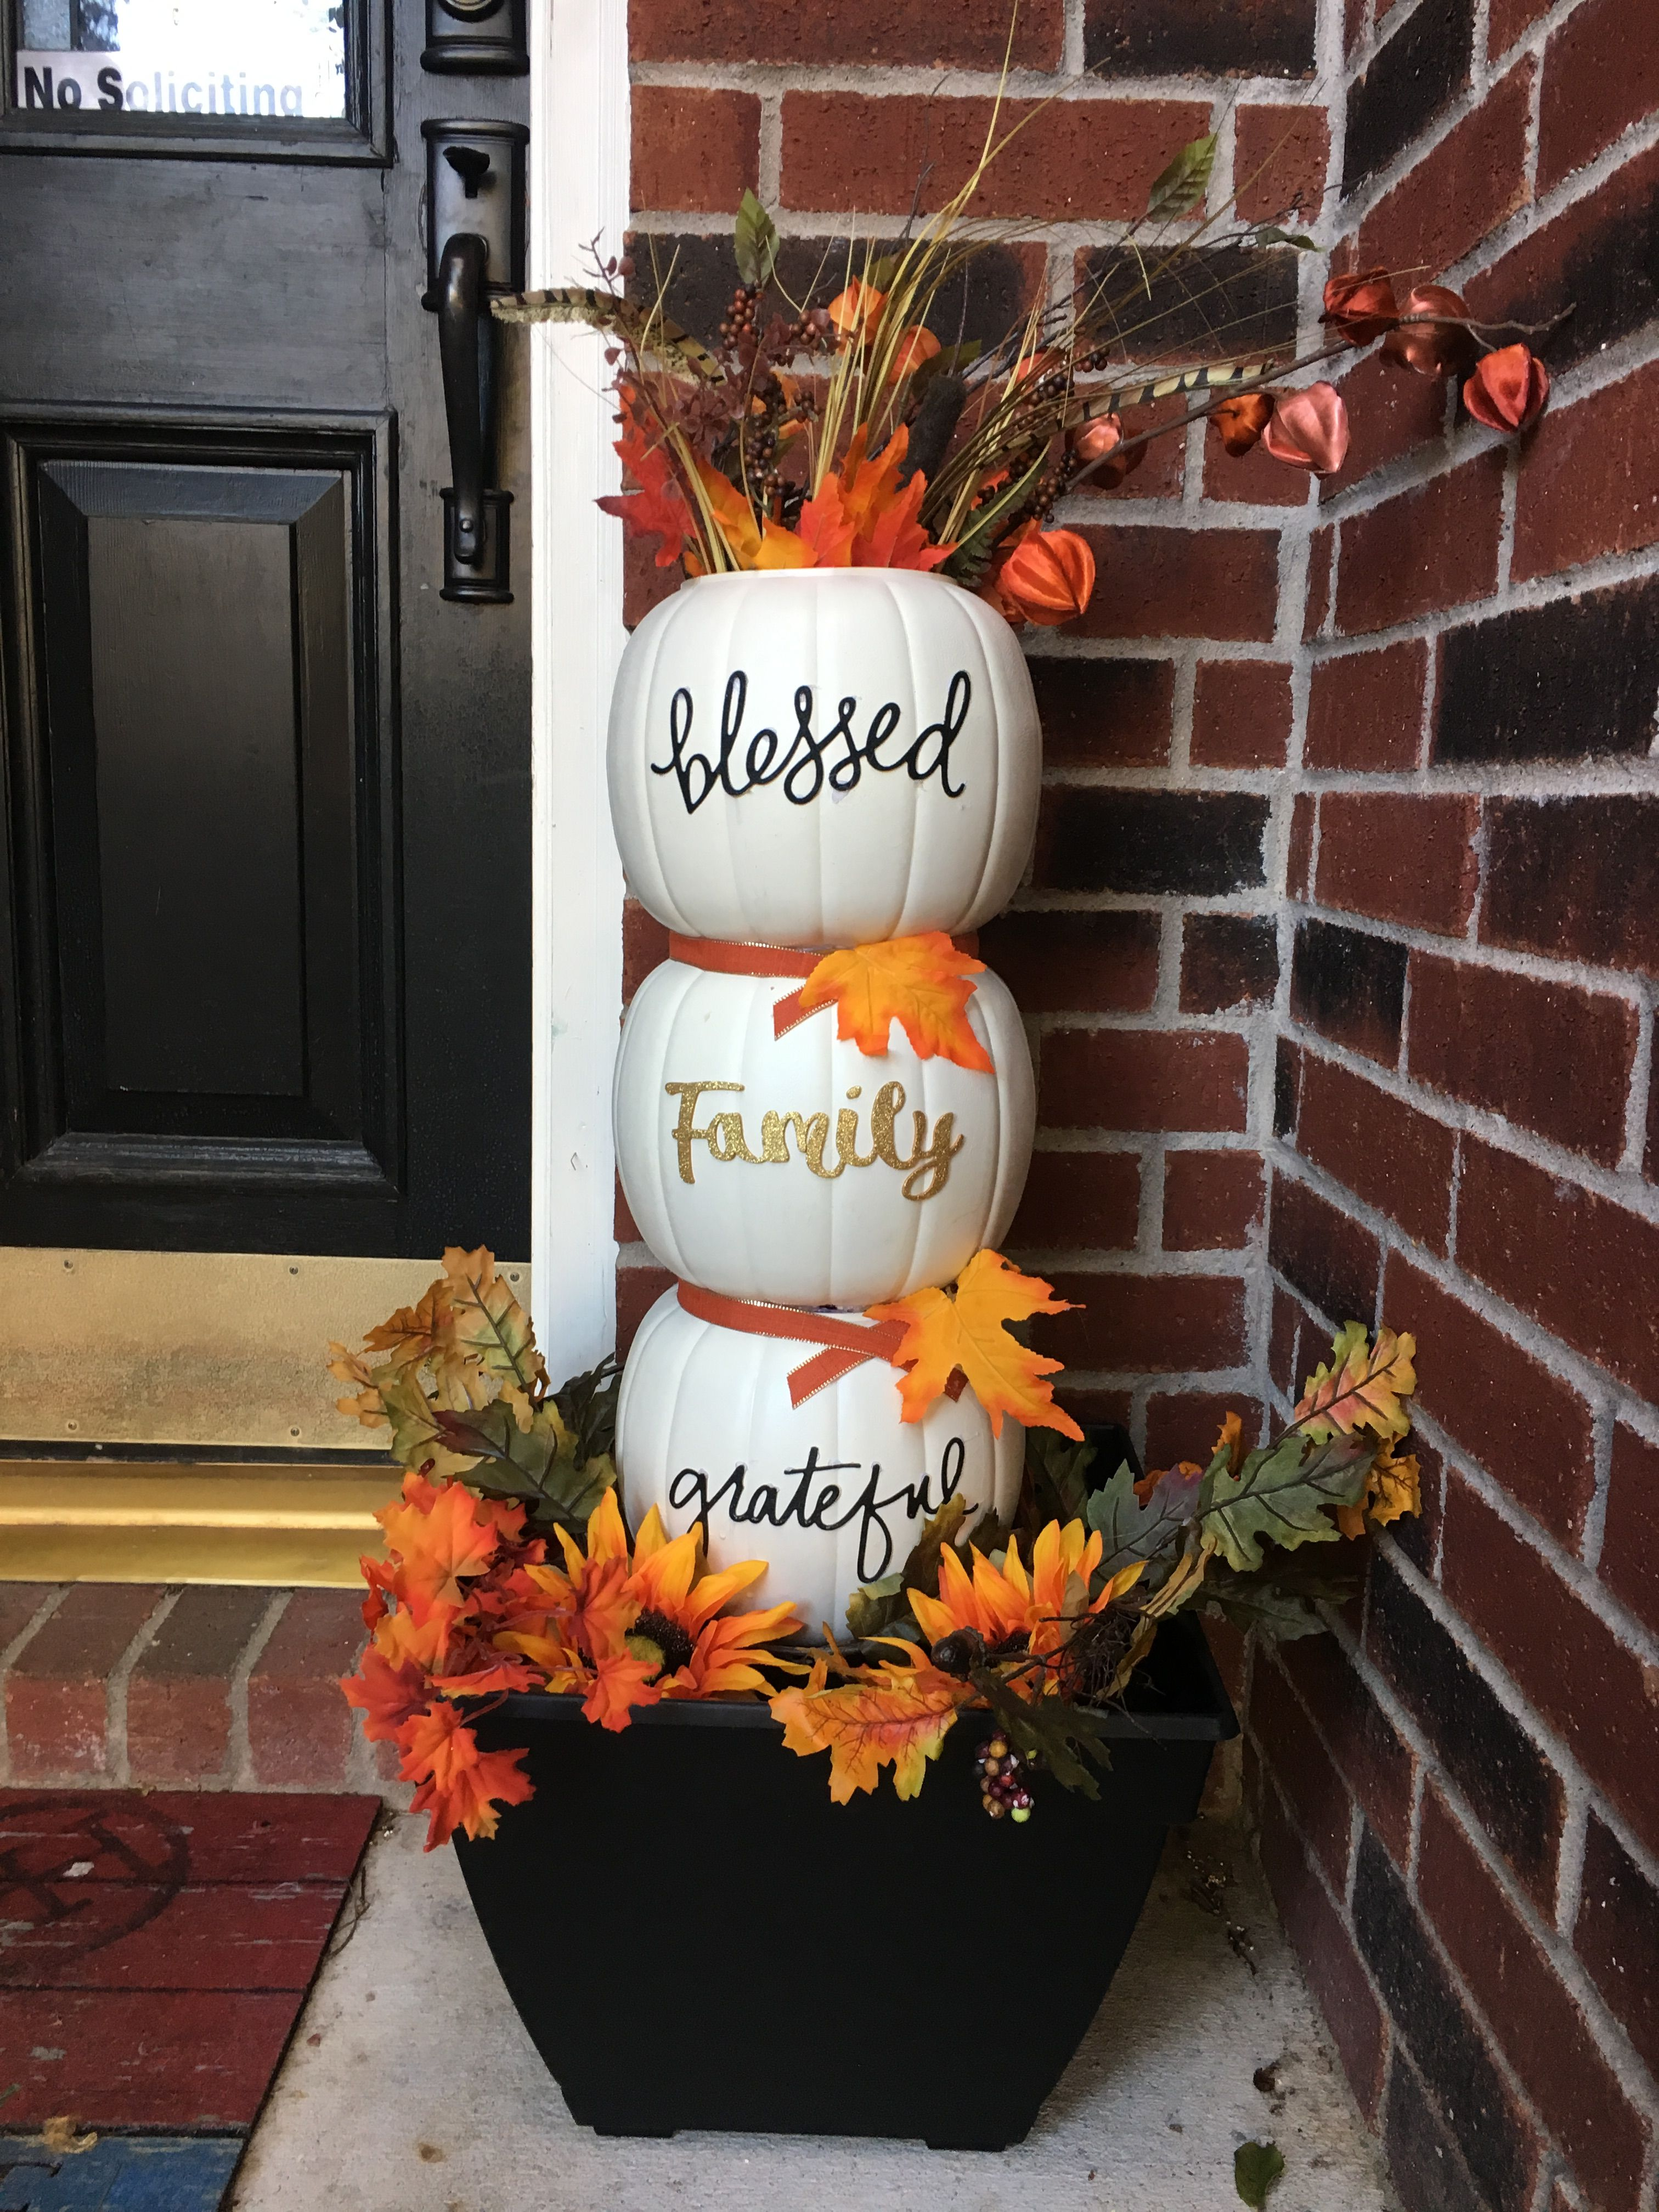 Used the plastic pumpkins and painted them off white. Might have been better to use vinyl letters without bling so you can easily spray sealant. #fallfrontporchdecor